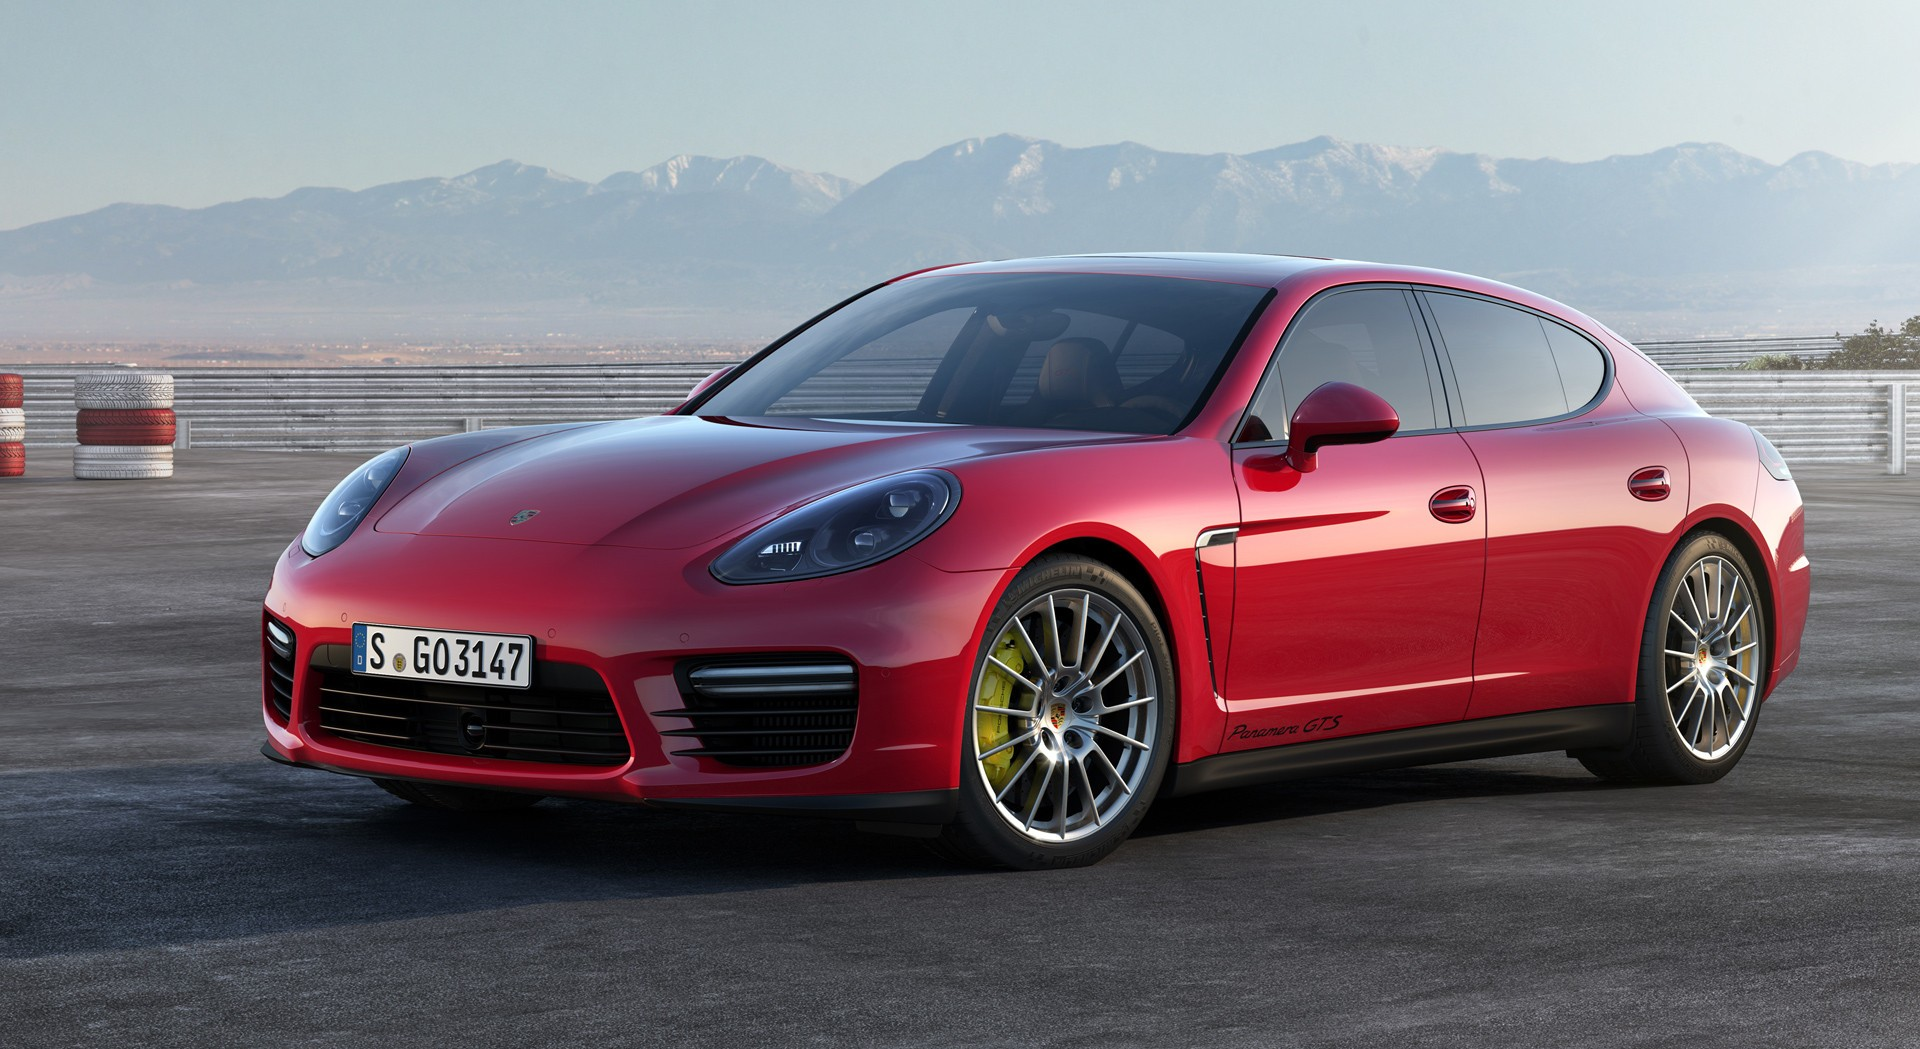 Porsche Panamera Red Hd Desktop Wallpapers 4k Hd